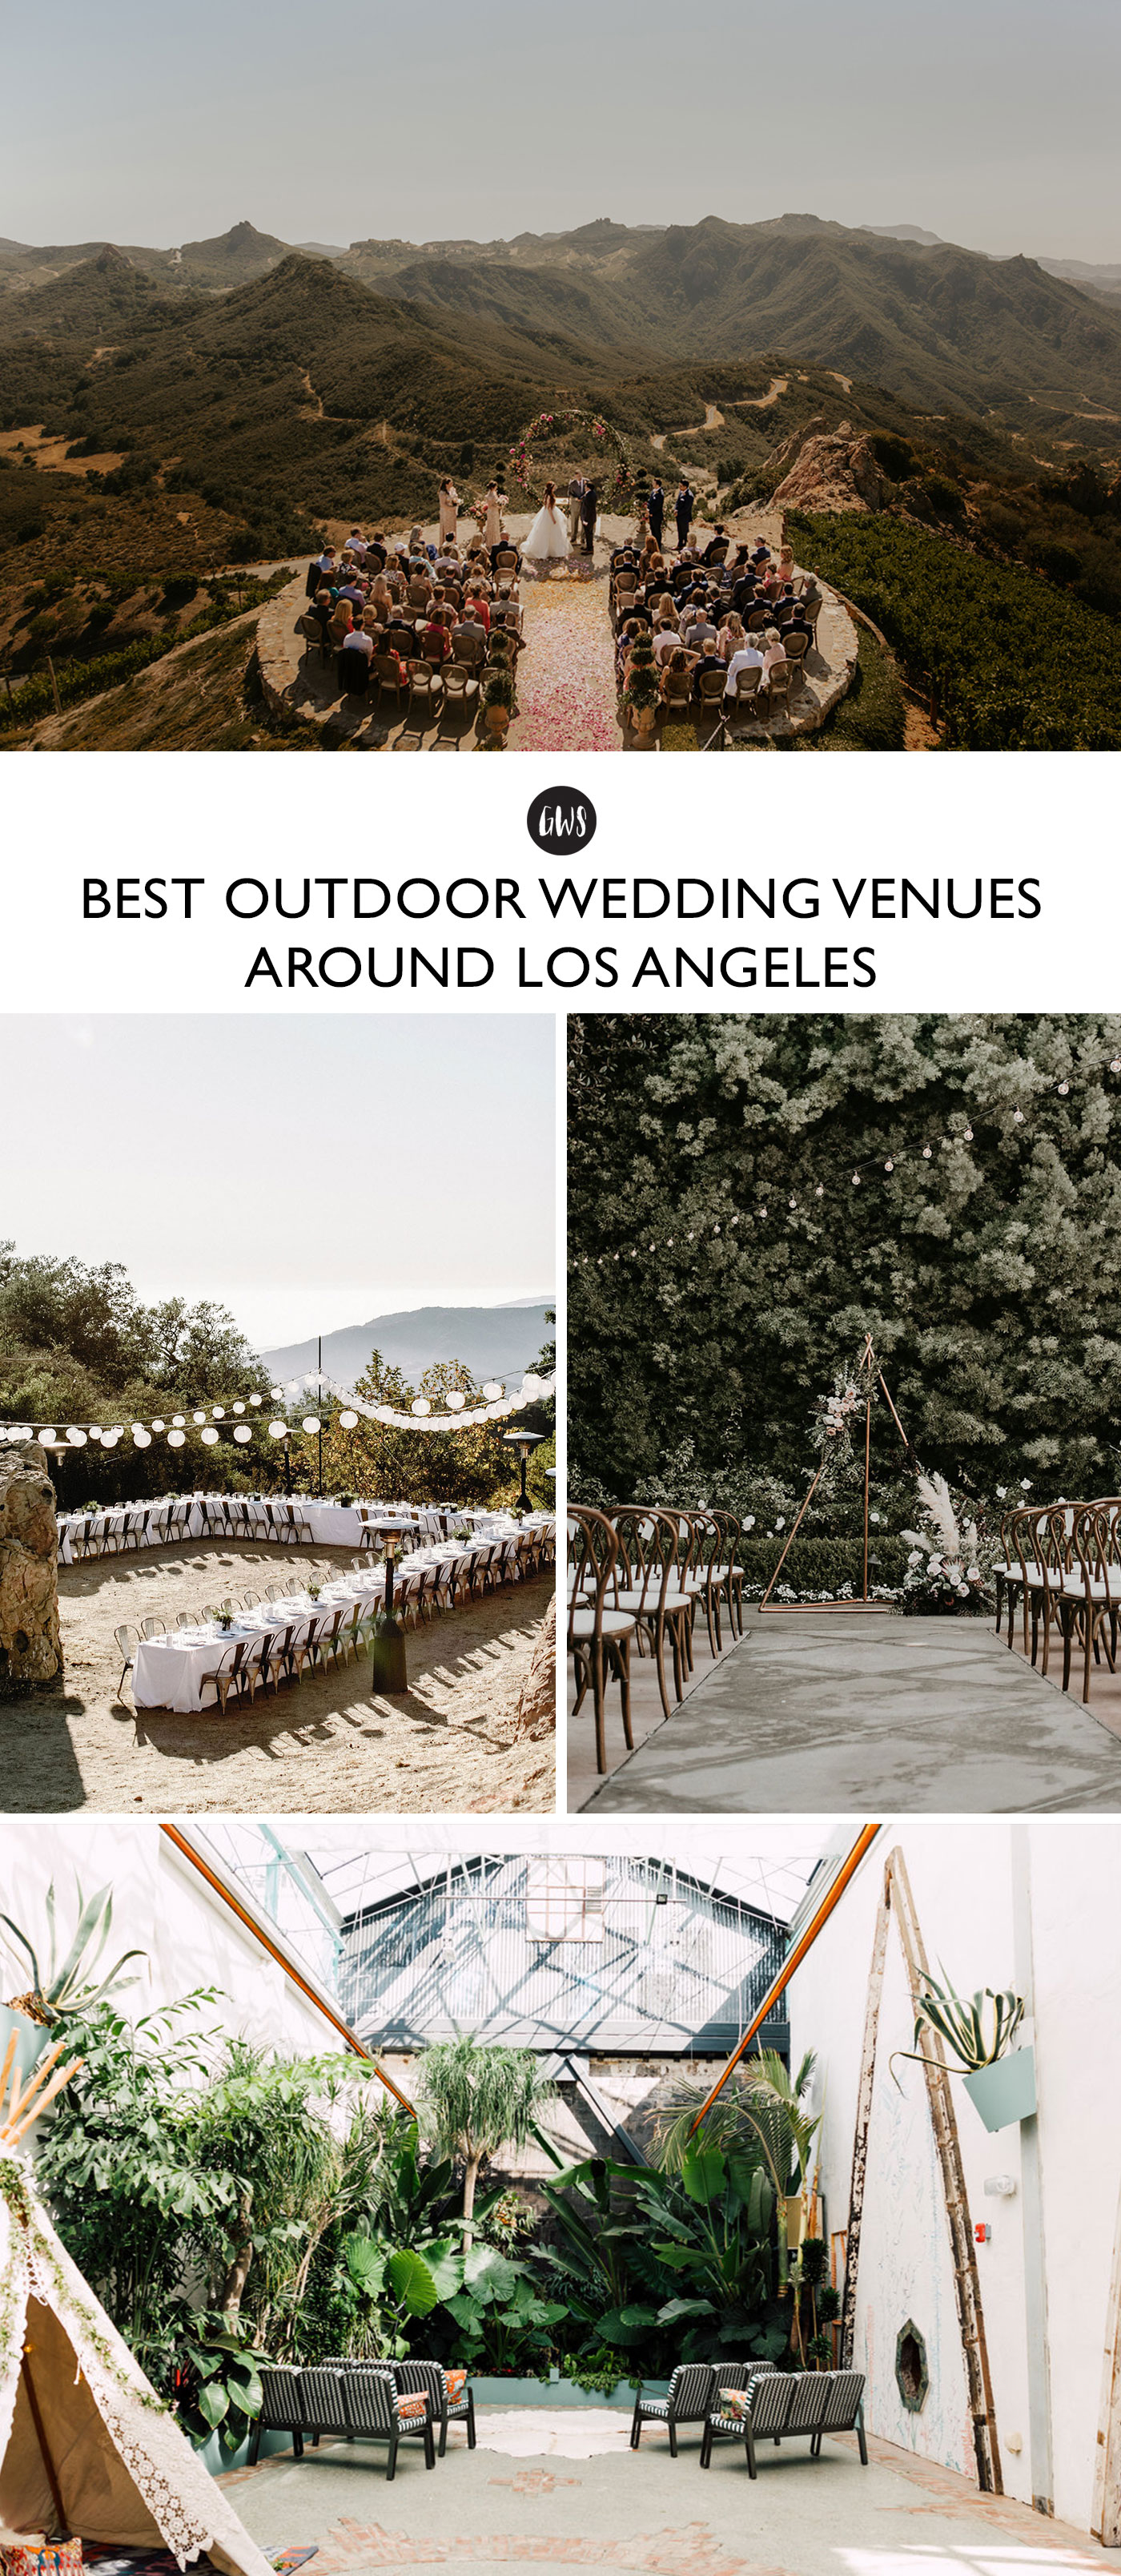 the best venues for outdoor weddings in Los Angeles, Malibu, and the OC